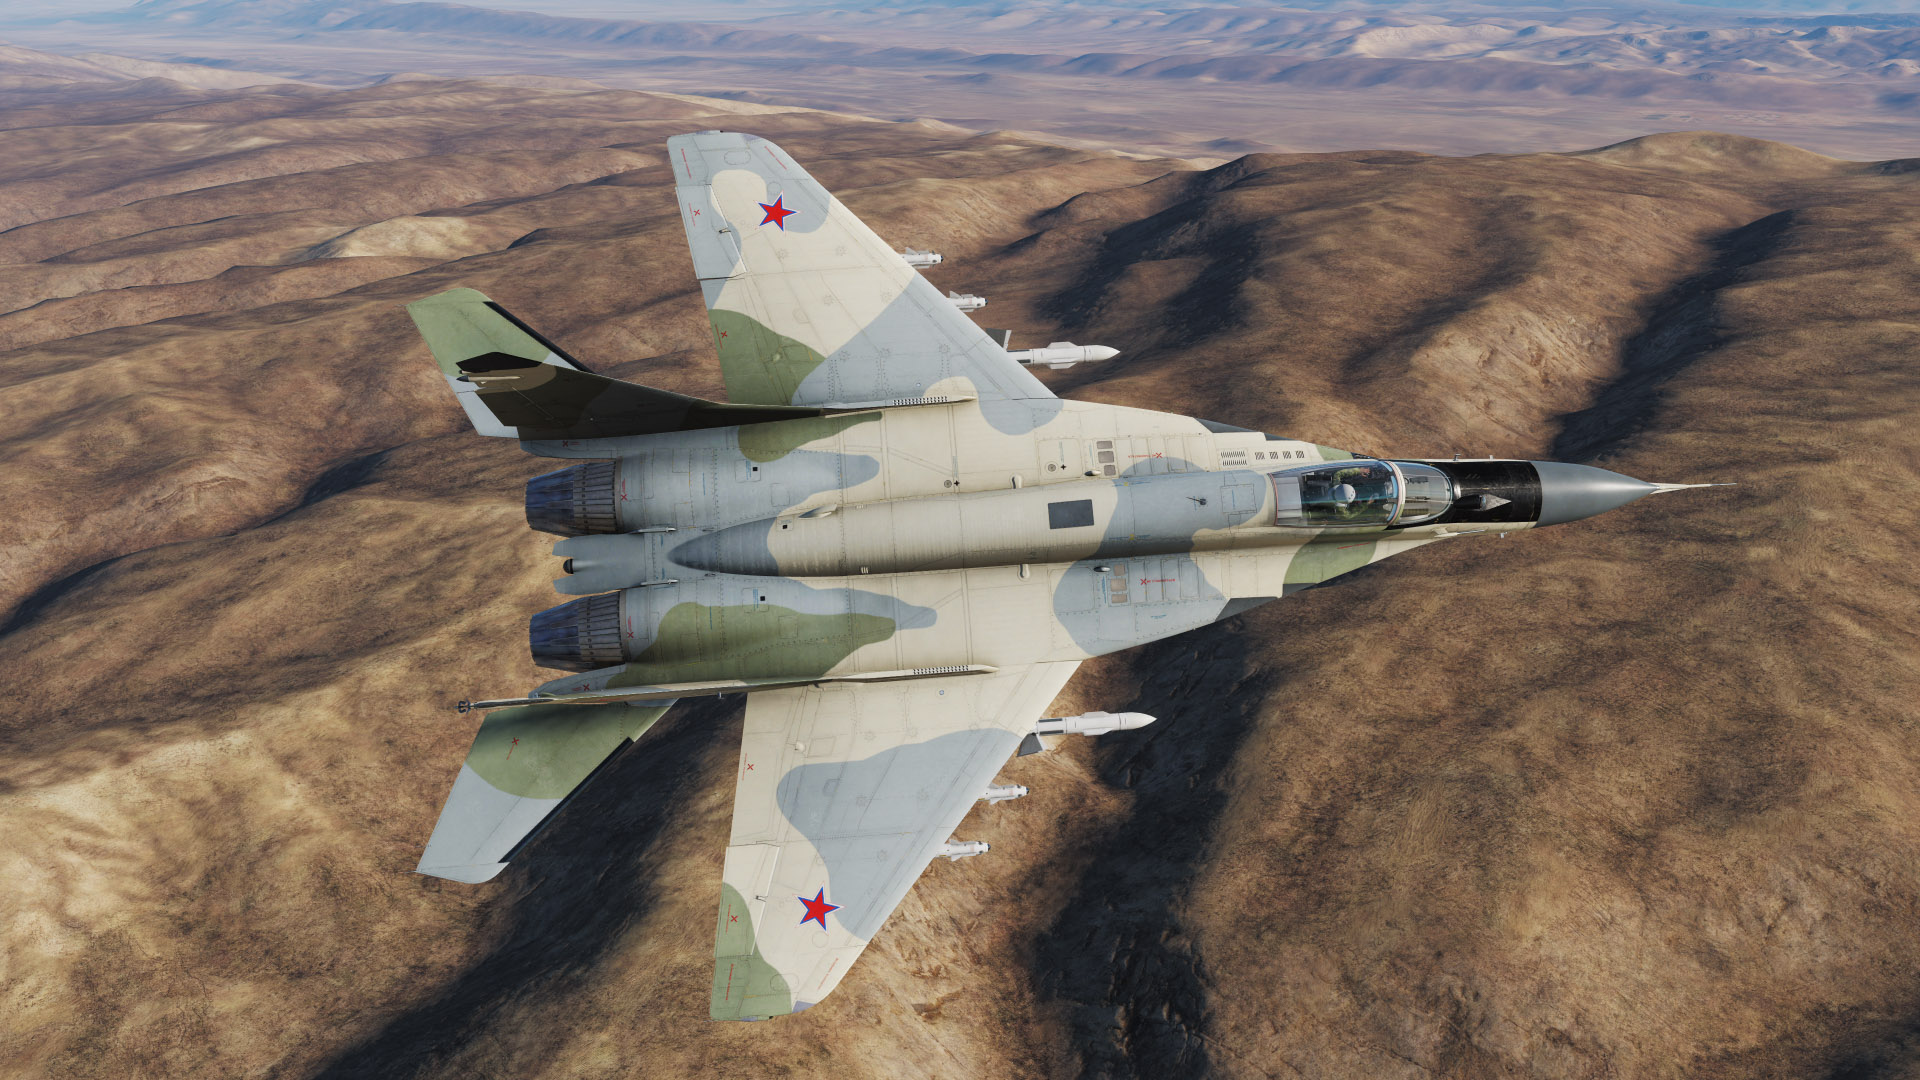 MiG-29S - Fictional Russian Air Force scheme